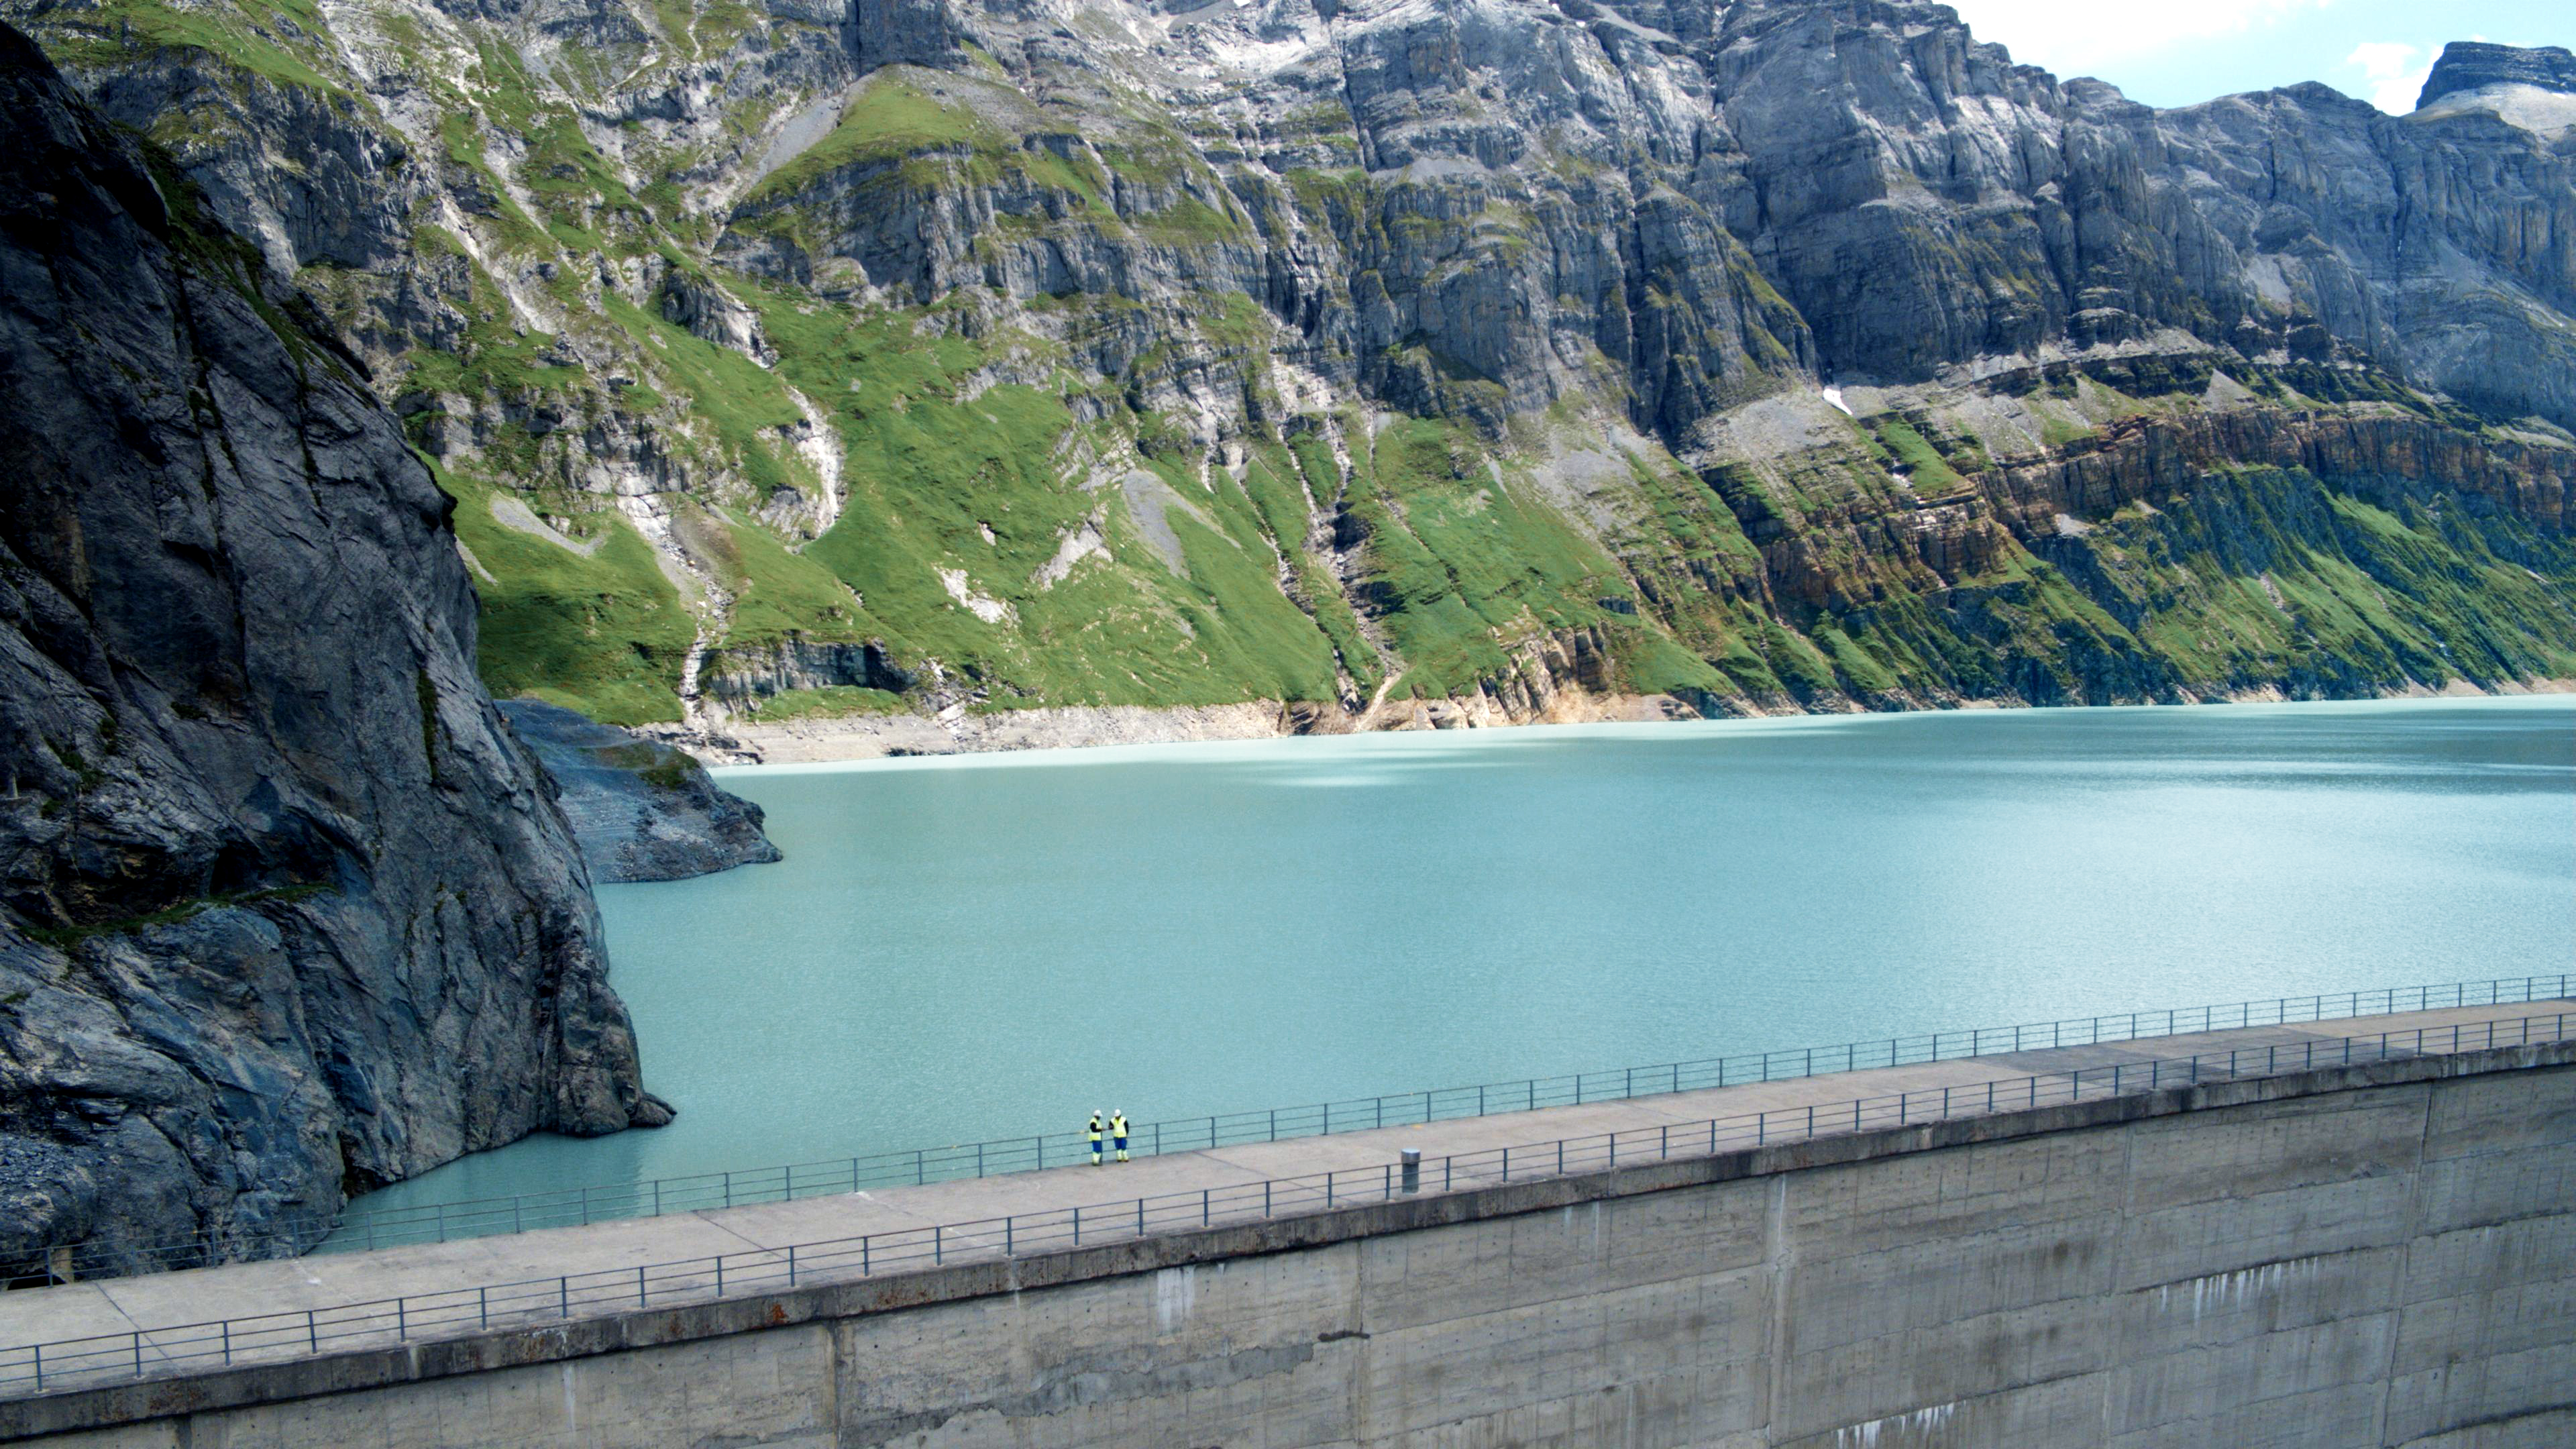 An Alpine reservoir, part of the Linth-Limmern facility